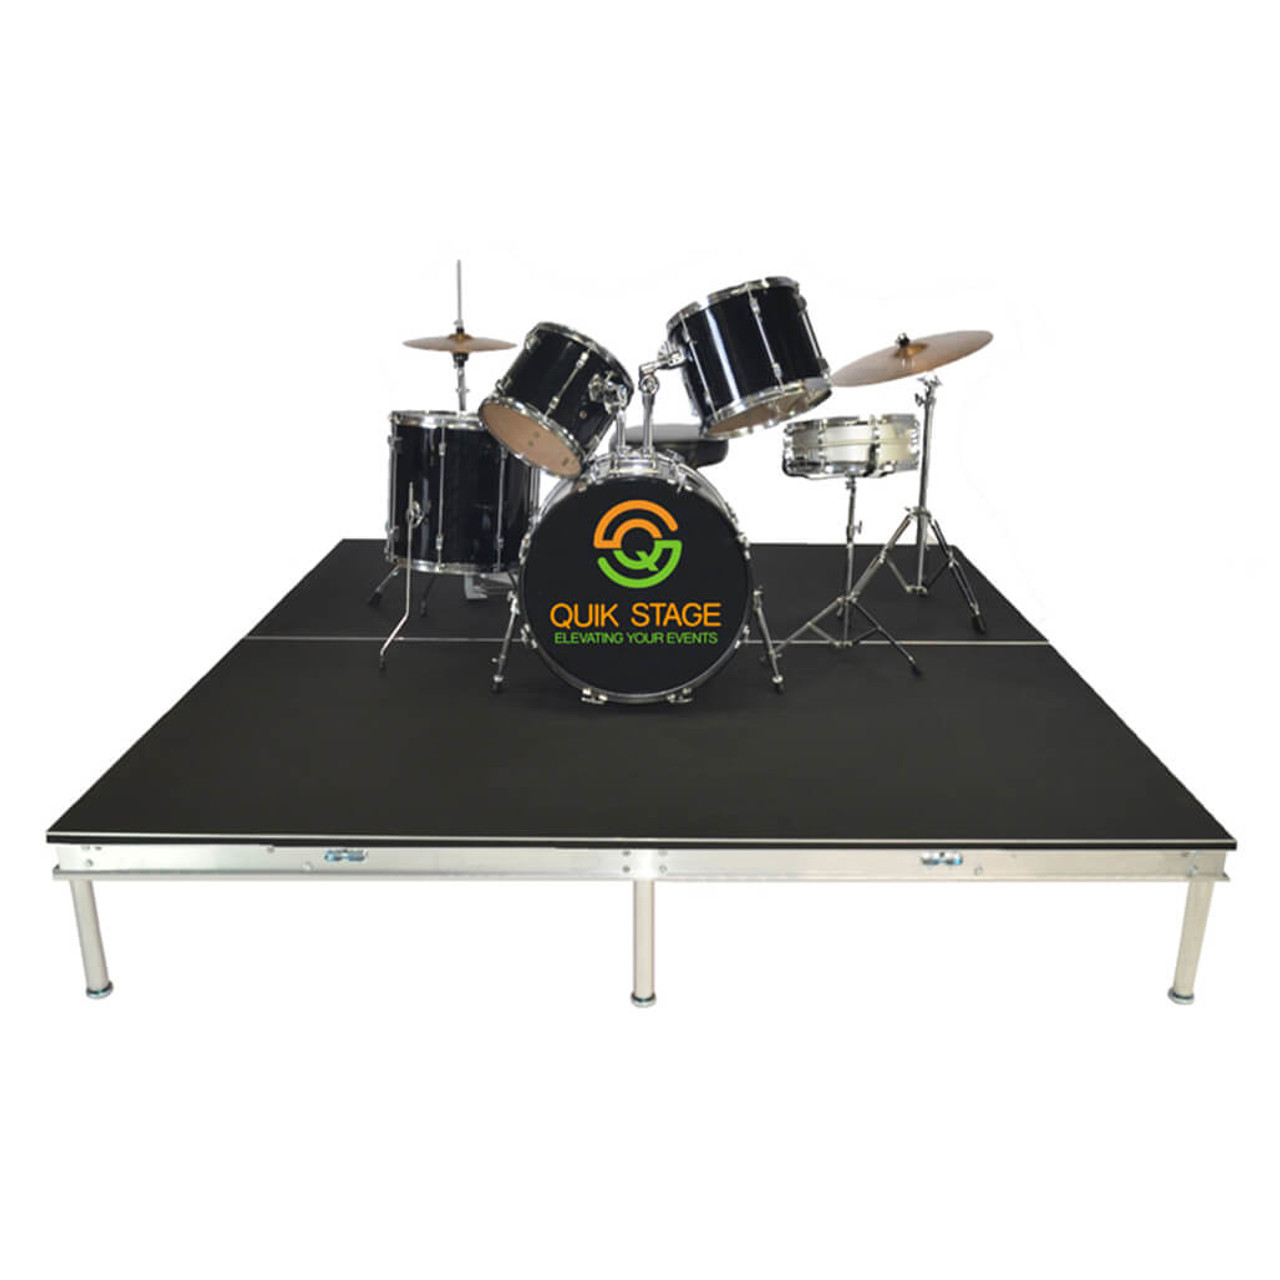 Quik Stage 12' x 24' High Portable Stage Package with Black Polyvinyl Non-Skid Surface. Additional Heights and Surfaces Available - Drum Riser without skirting